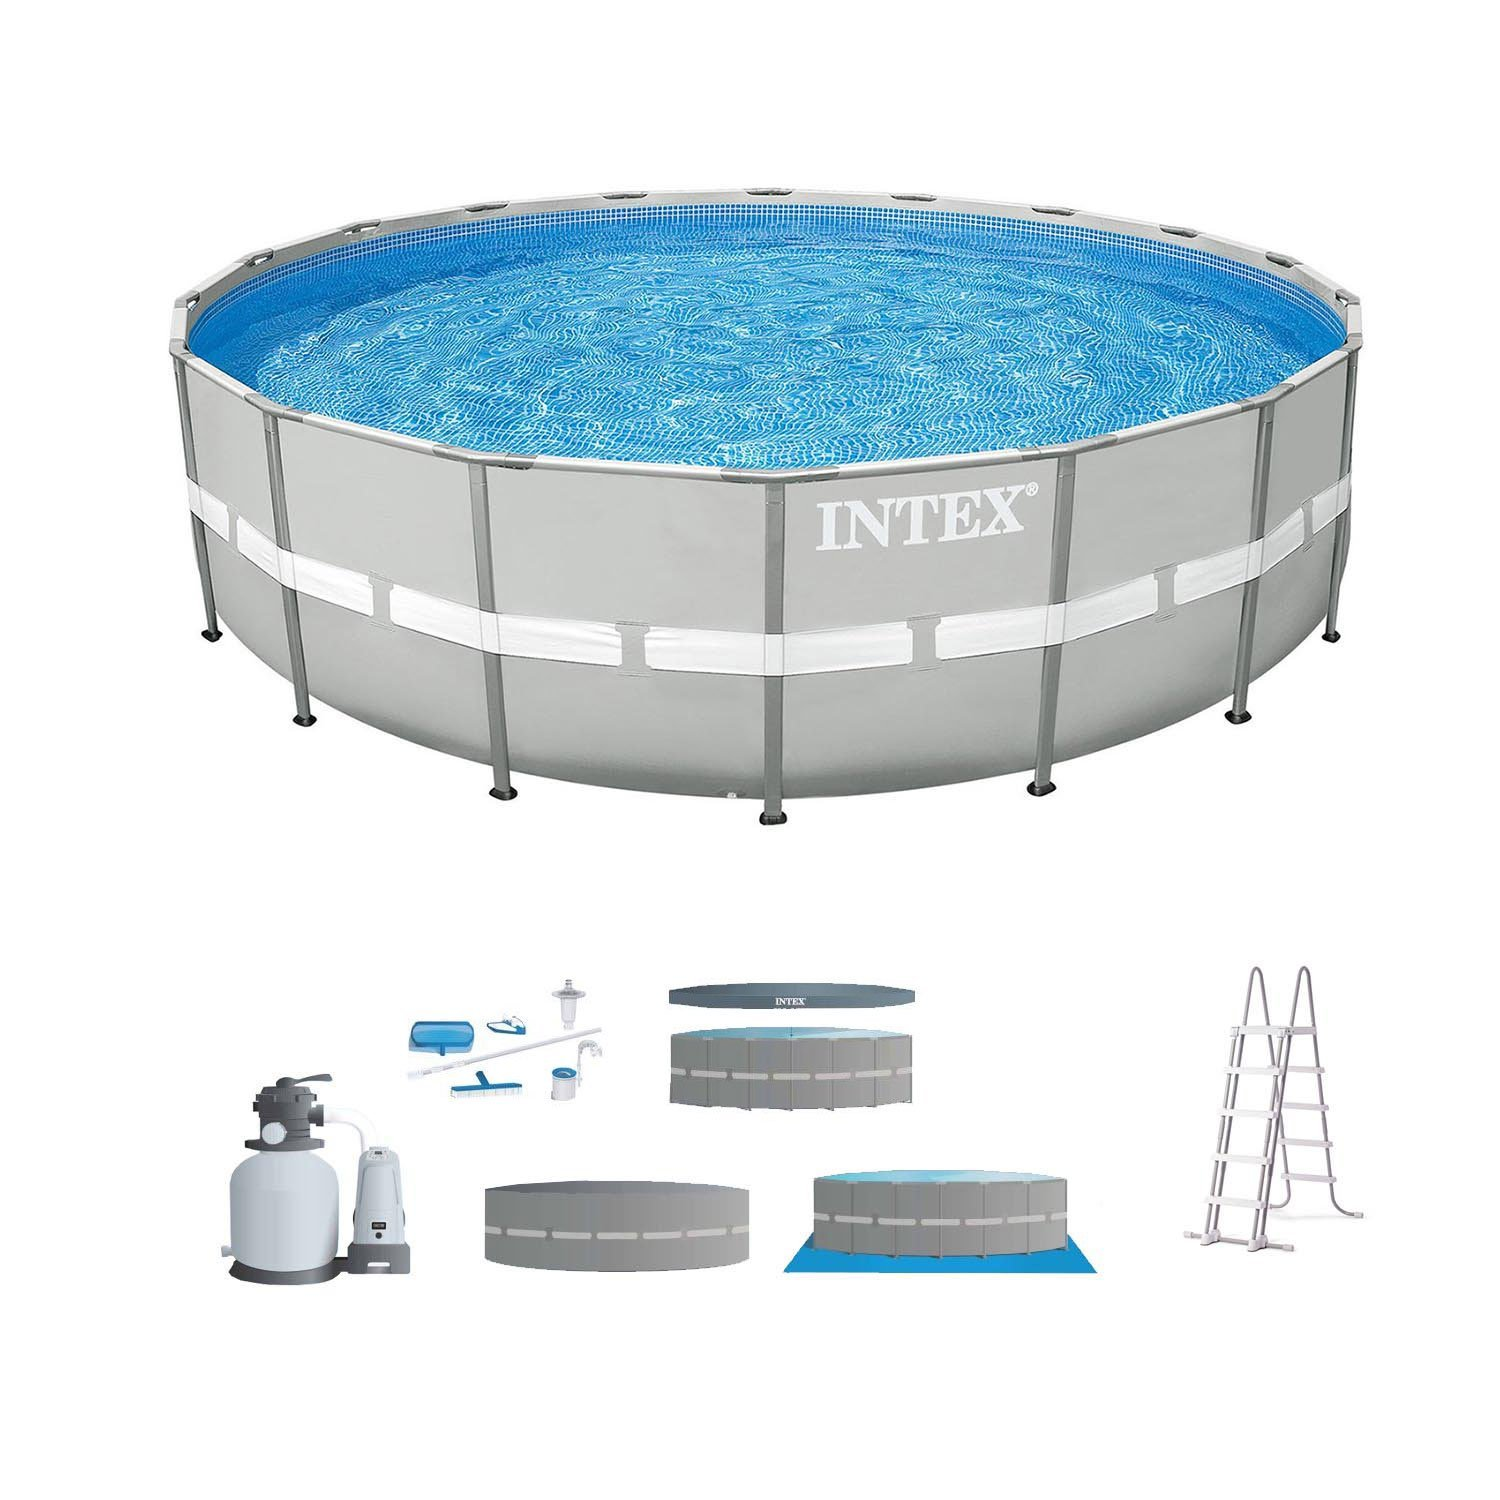 Intex 24 39 X 52 Steel Ultra Frame Round Above Ground Swimming Pool Set With Pump Whole Pools